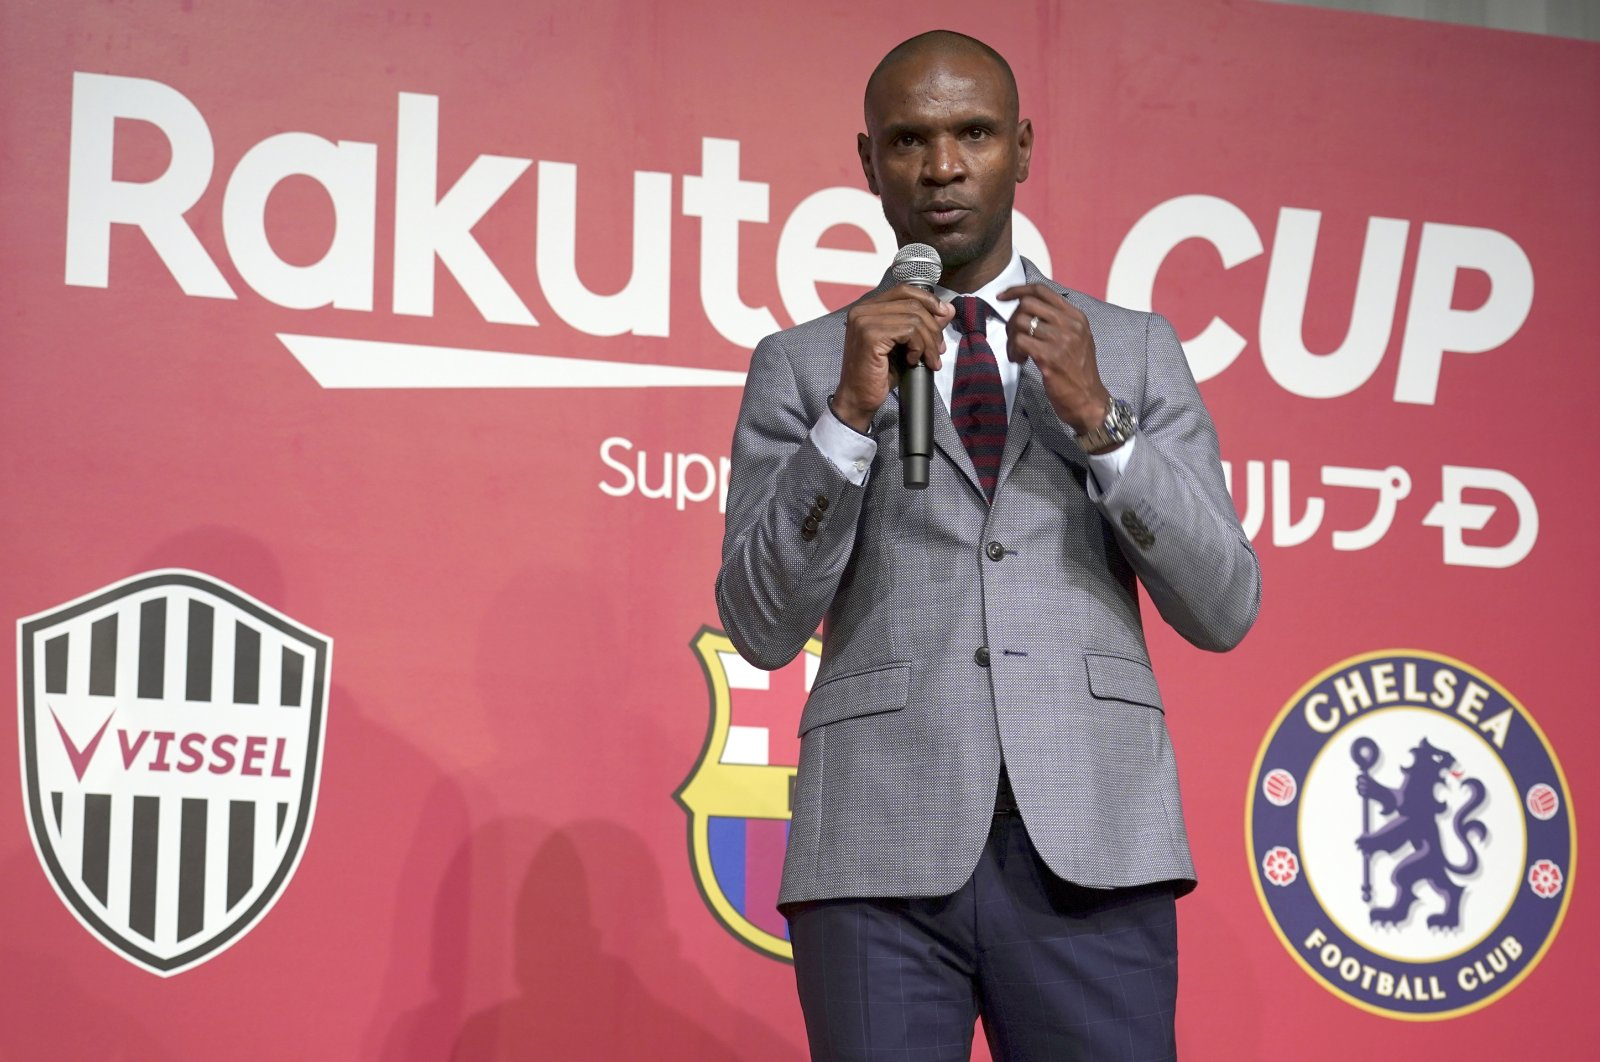 Eric Abidal delivers a speech during a press conference in Tokyo, Japan, April 18, 2019. (AP Photo)